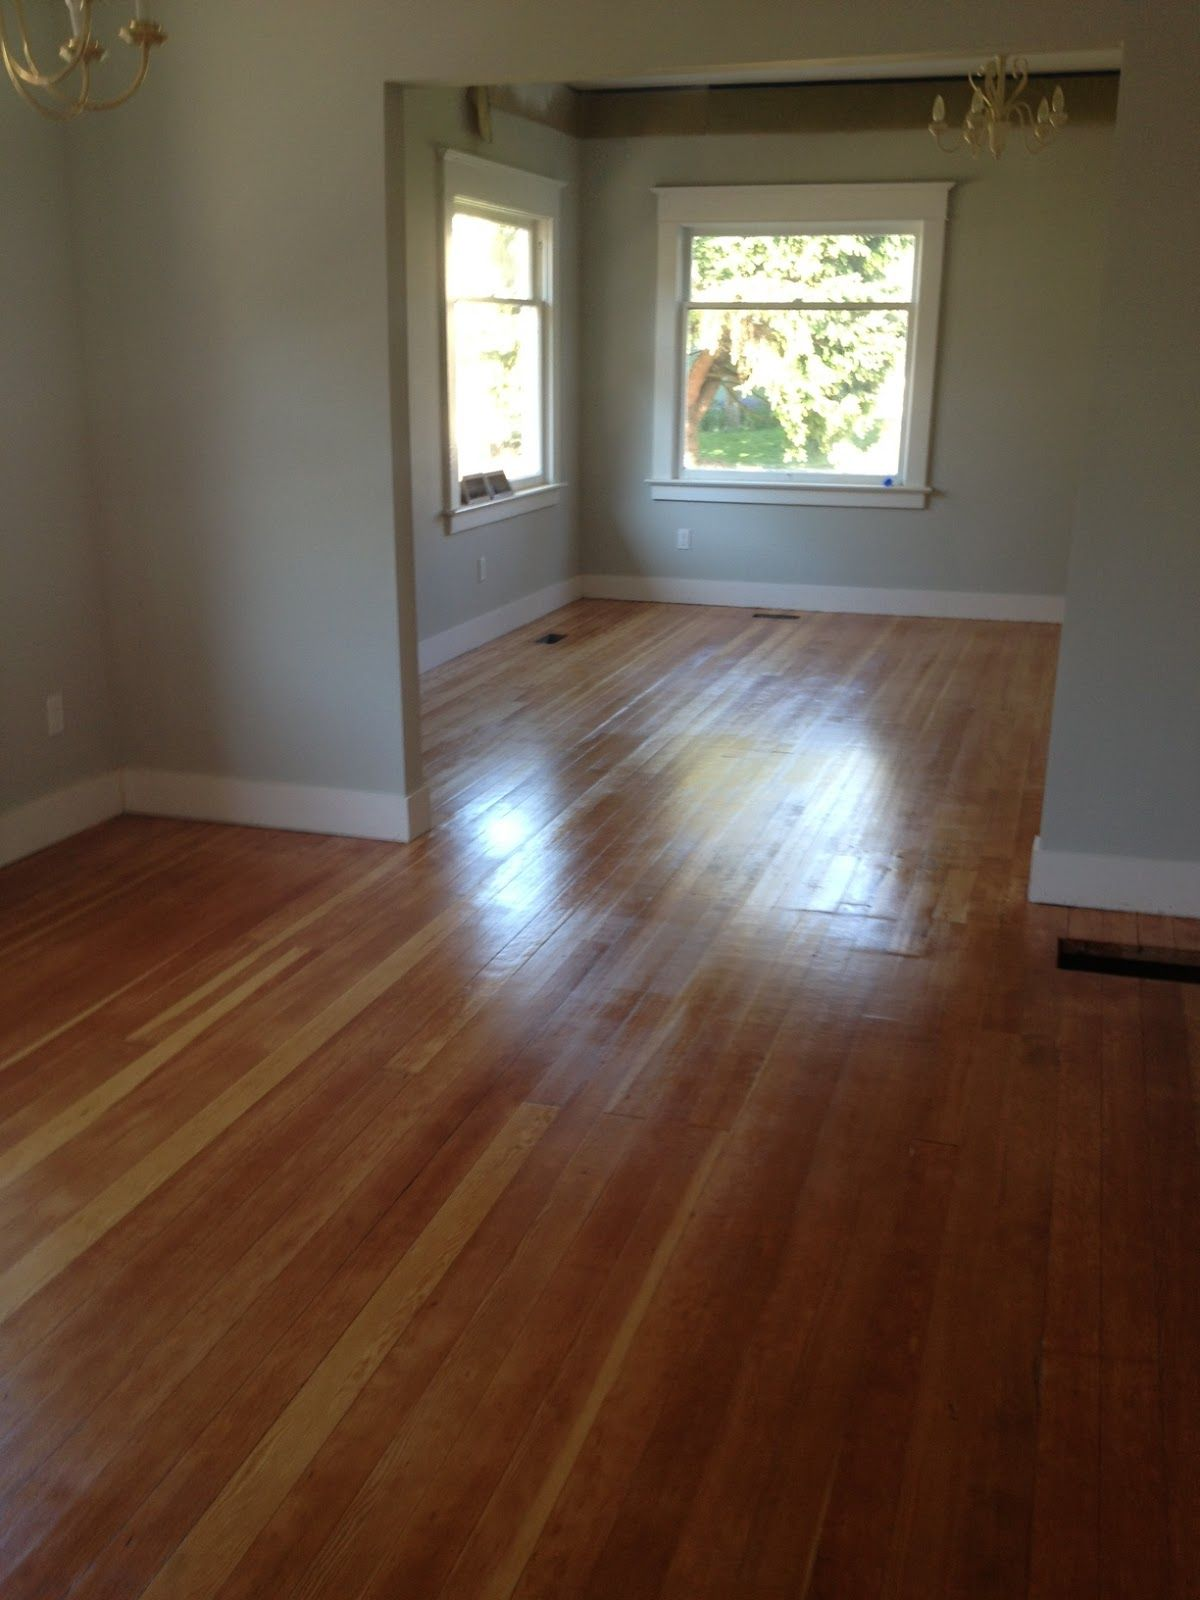 Refinishing Old Wood Floors  this could come in handy